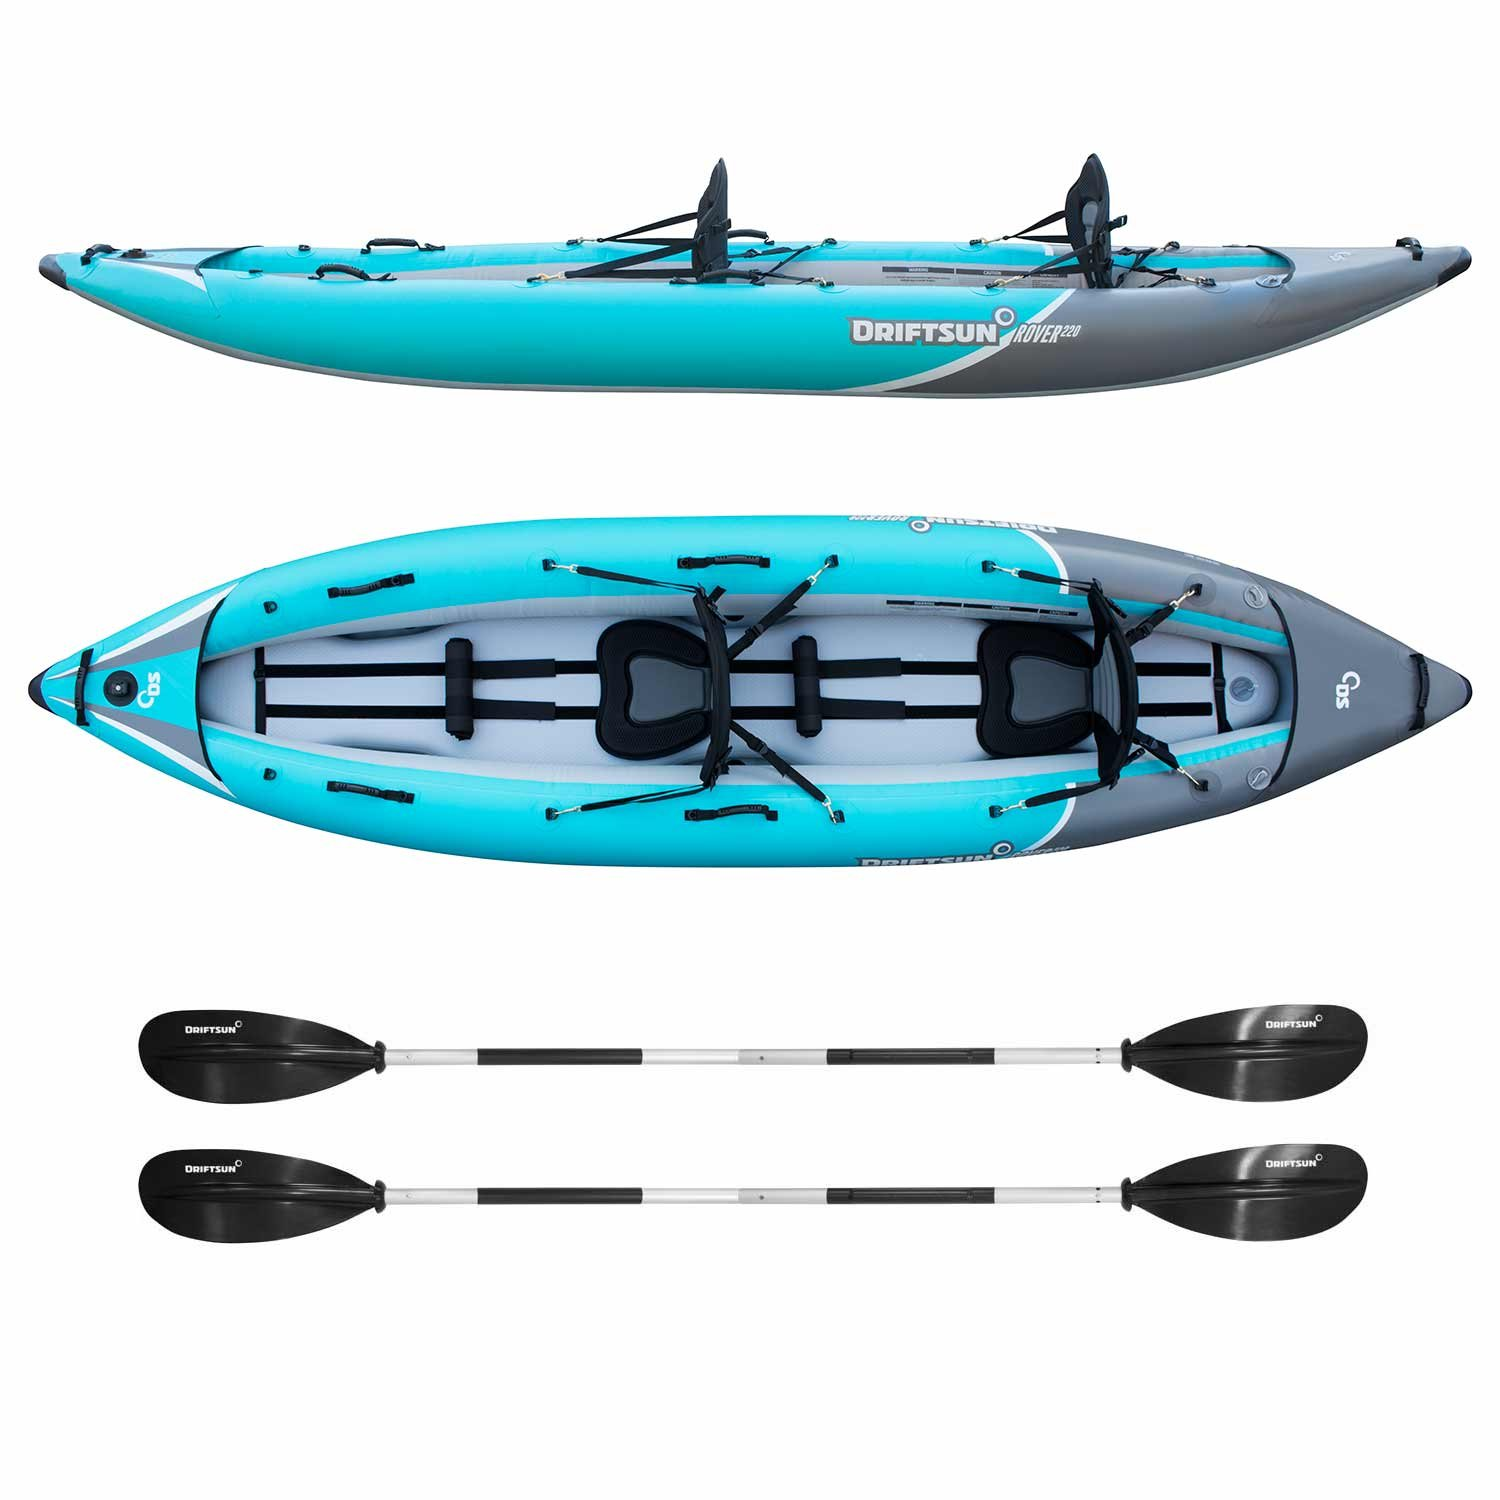 Driftsun Rover 220 Inflatable Tandem White-Water Kayak with High Pressure Floor and EVA Padded Seats with High Back Support, Includes Action Cam Mount, Aluminum Paddles, Pump and More by Driftsun